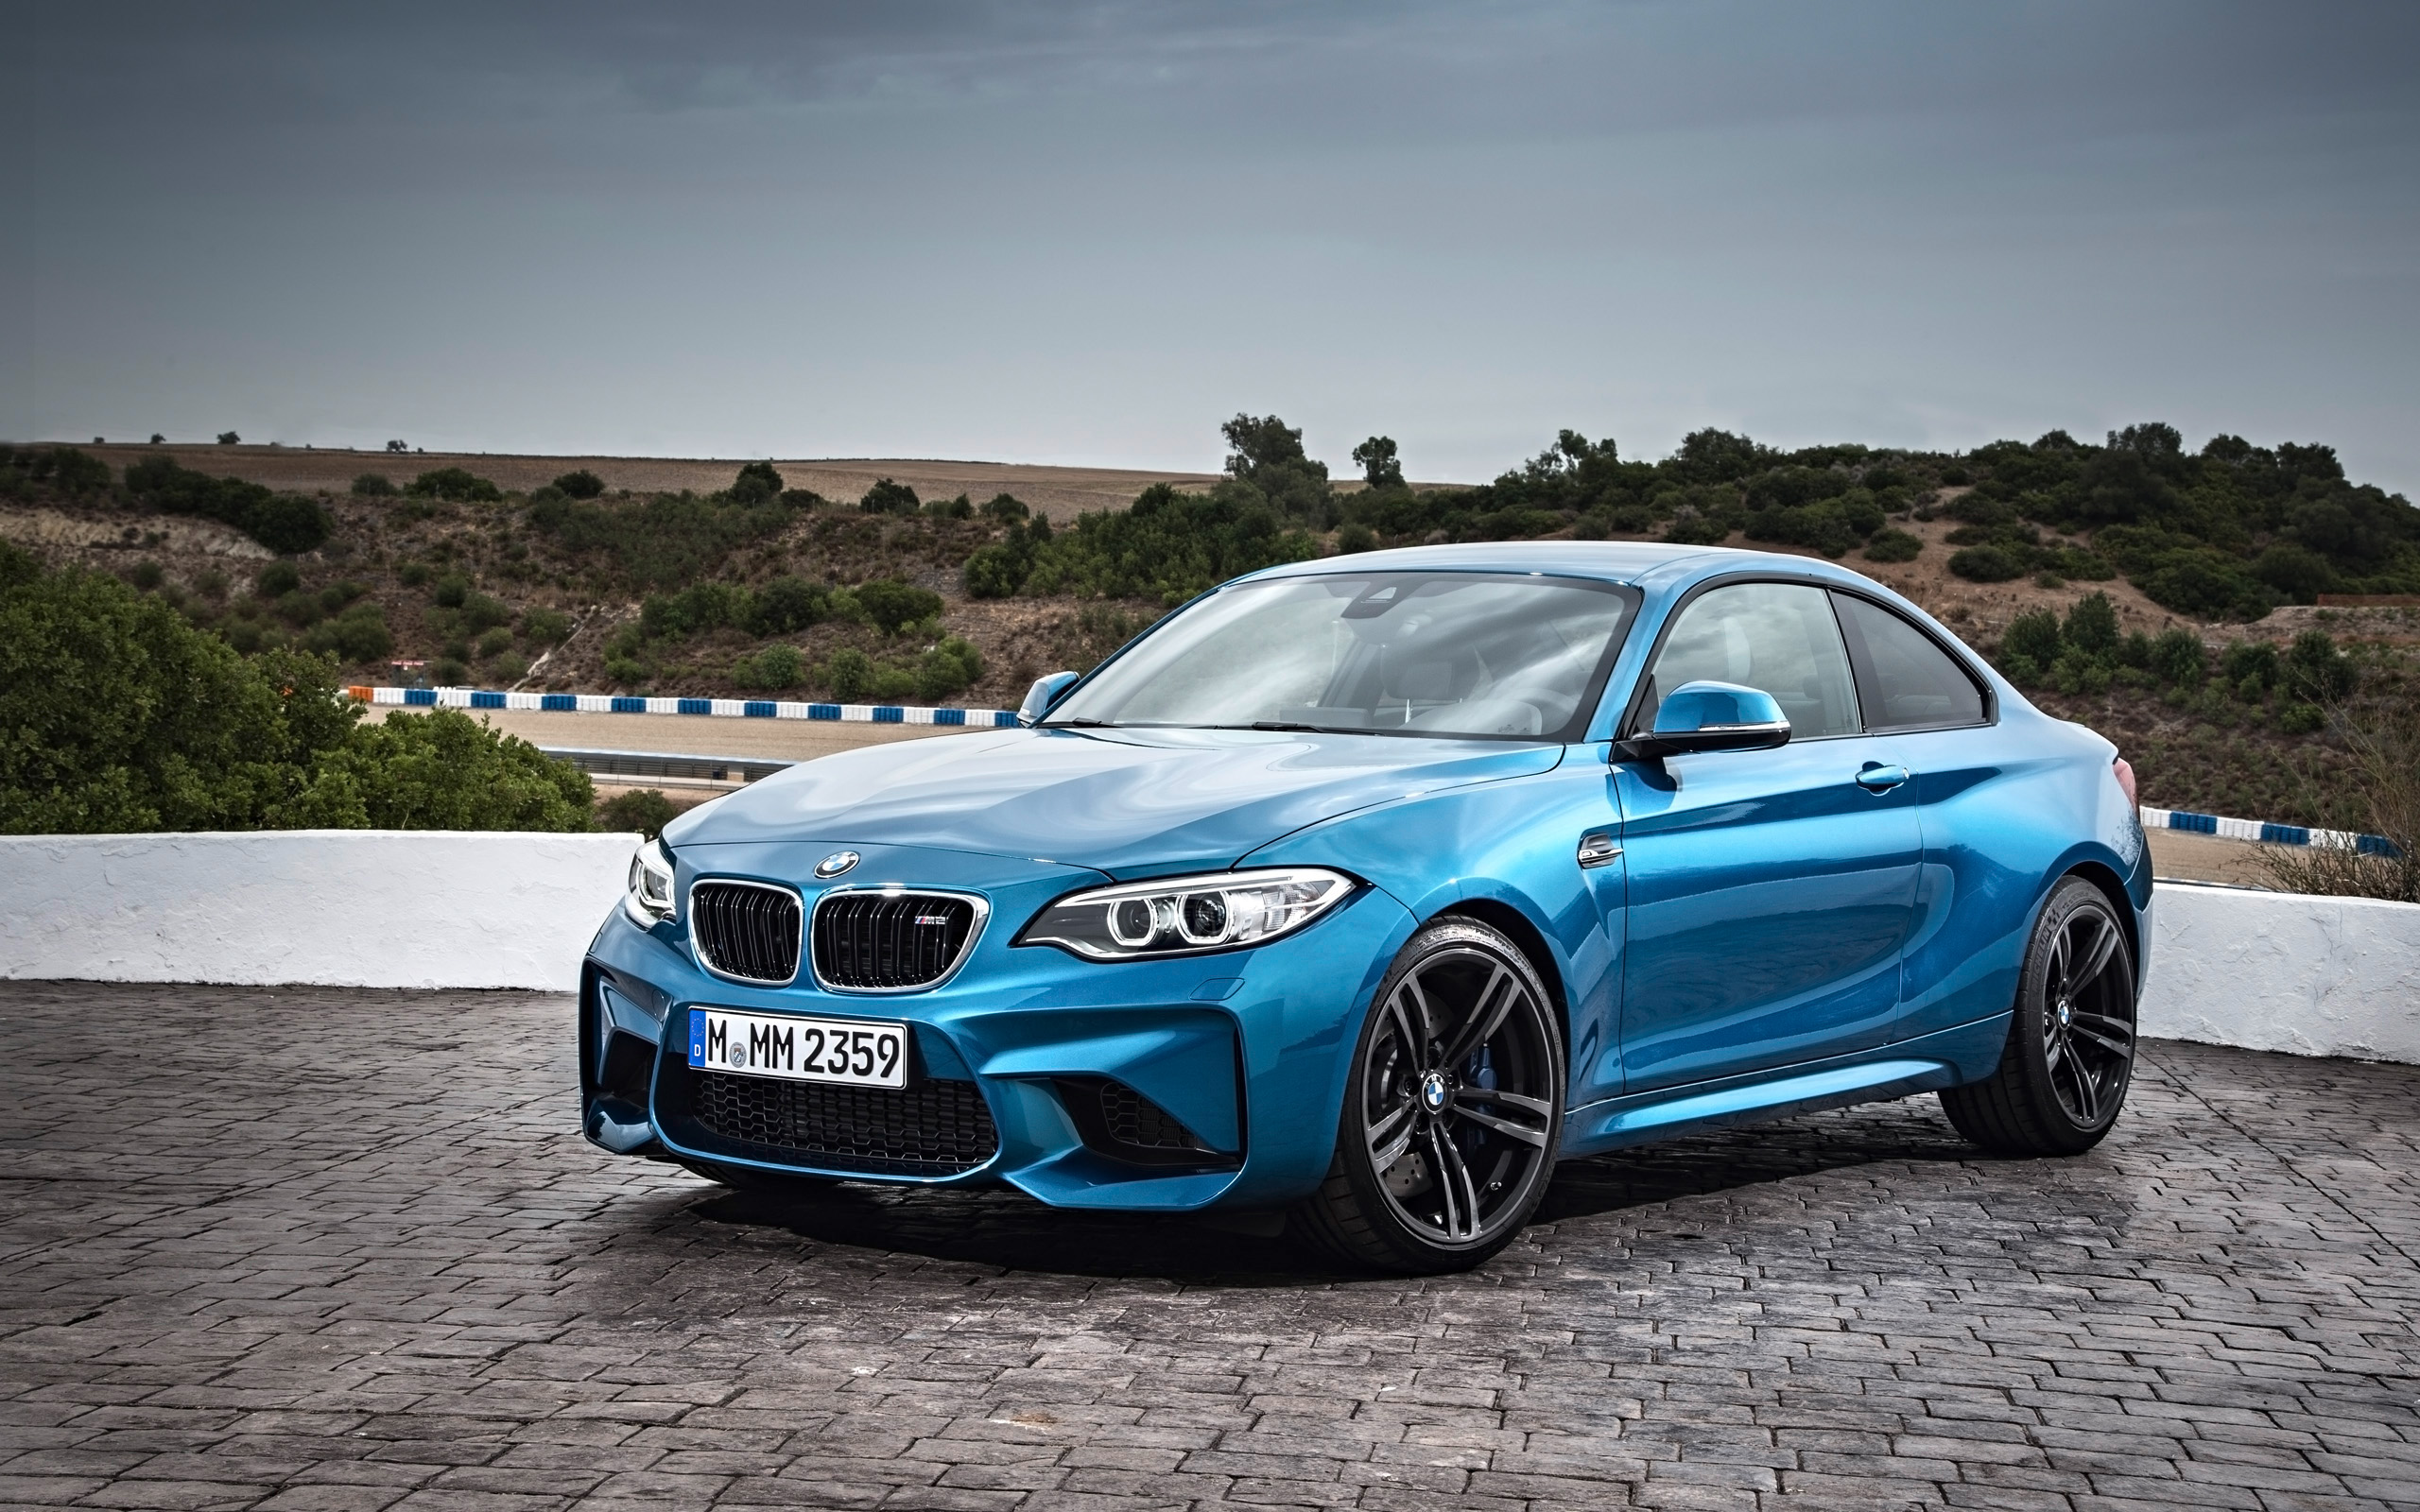 2560x1600 - BMW M2 Coupe Wallpapers 3